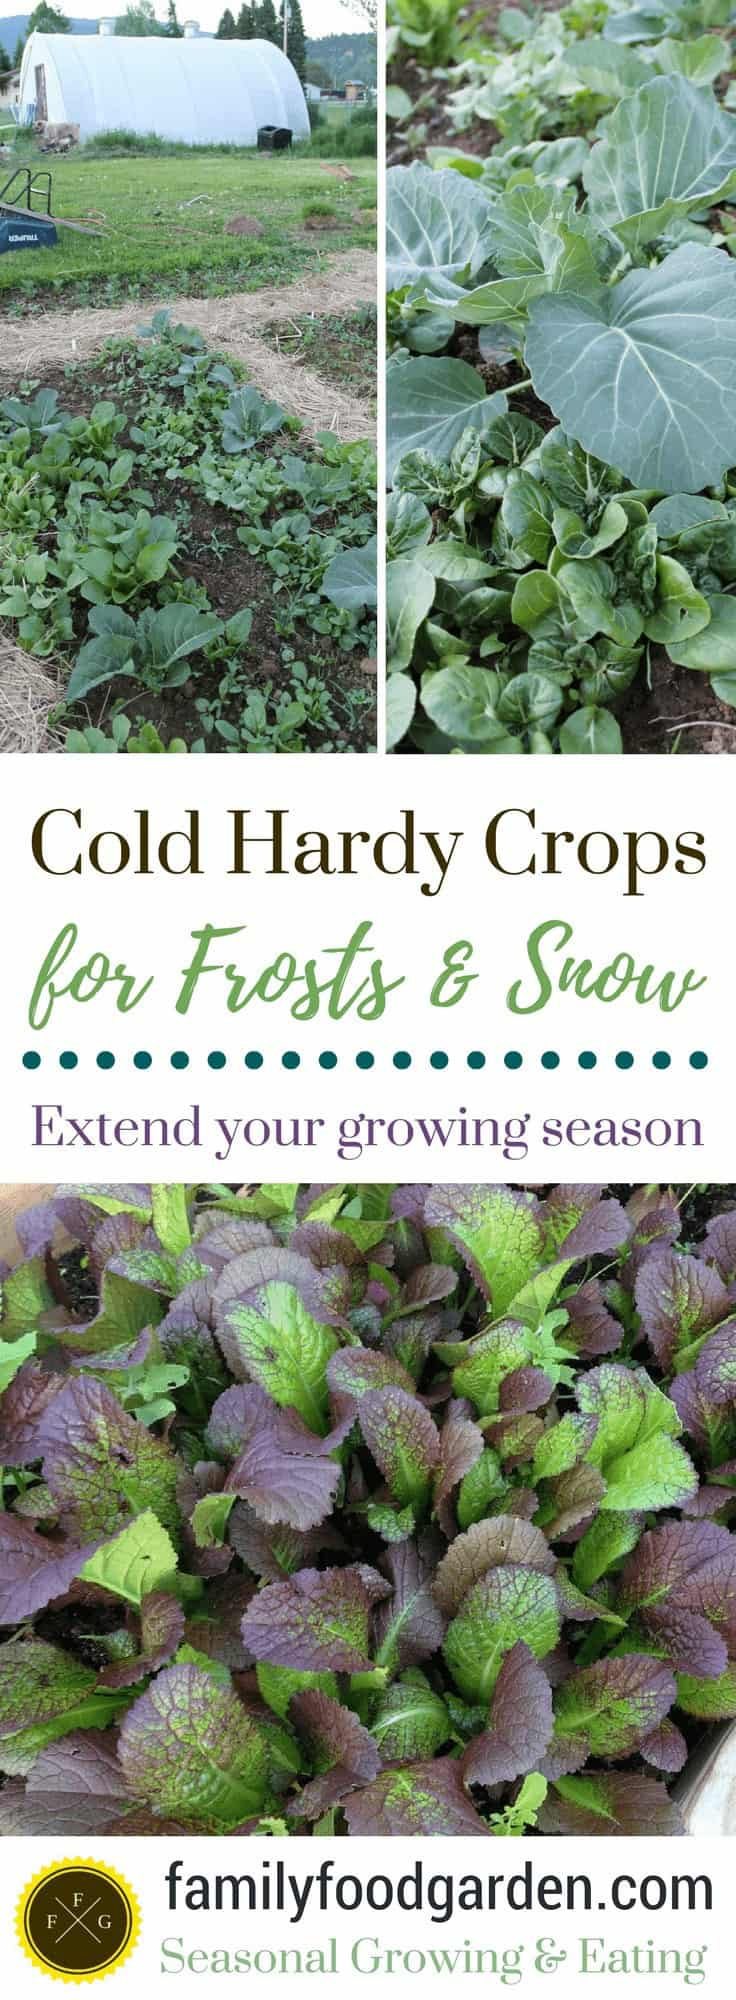 Cold Hardy Crops for Frosts and Snow